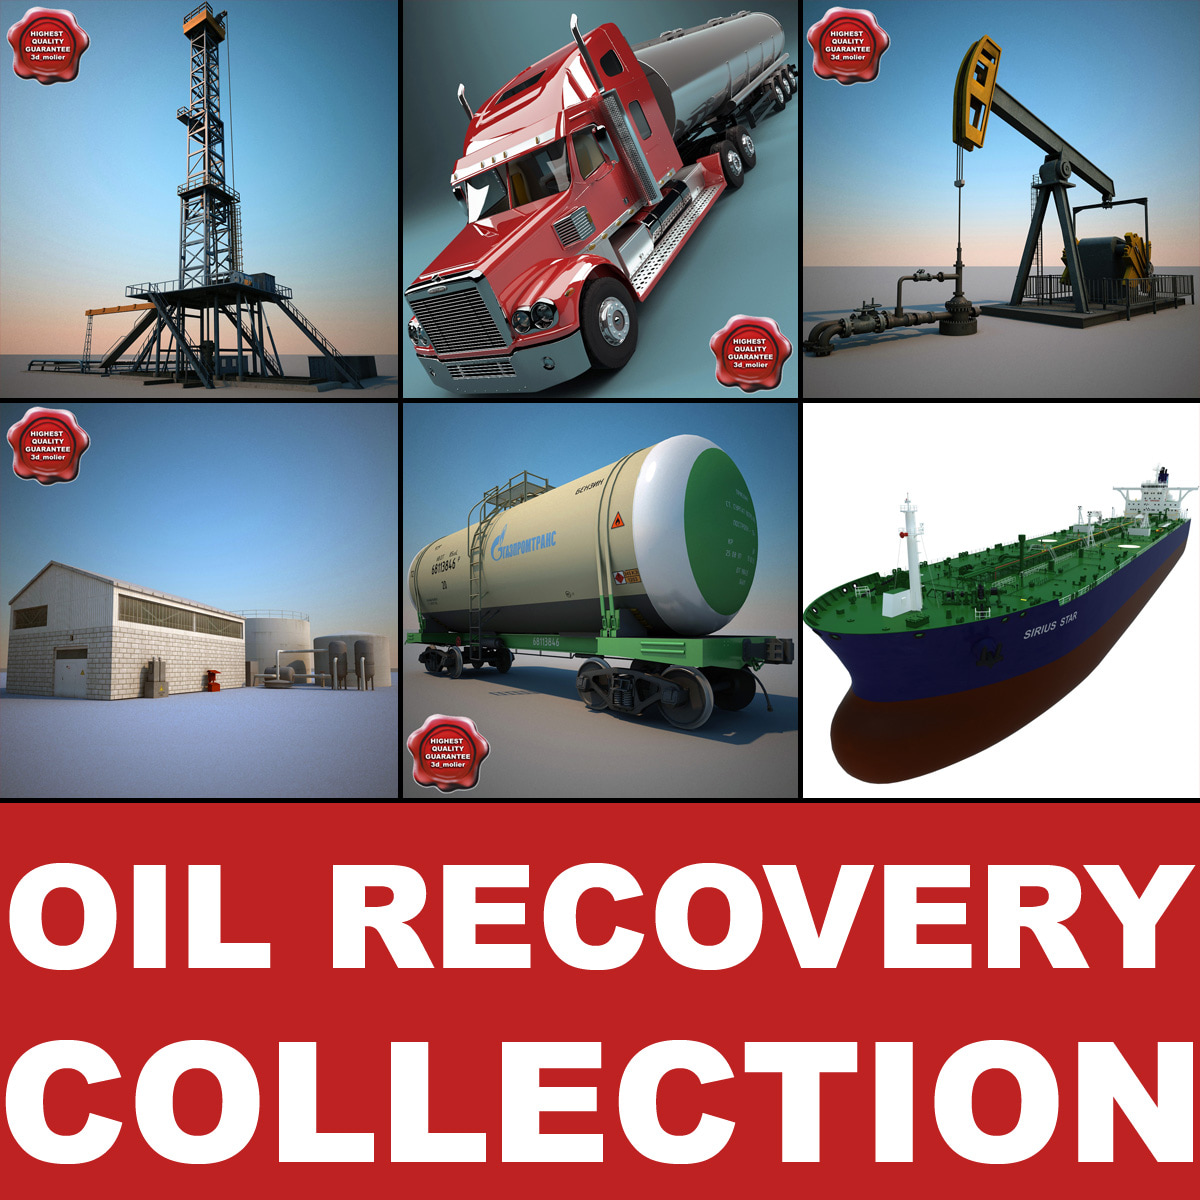 Oil_Recovery_Collection_V2_000.jpg